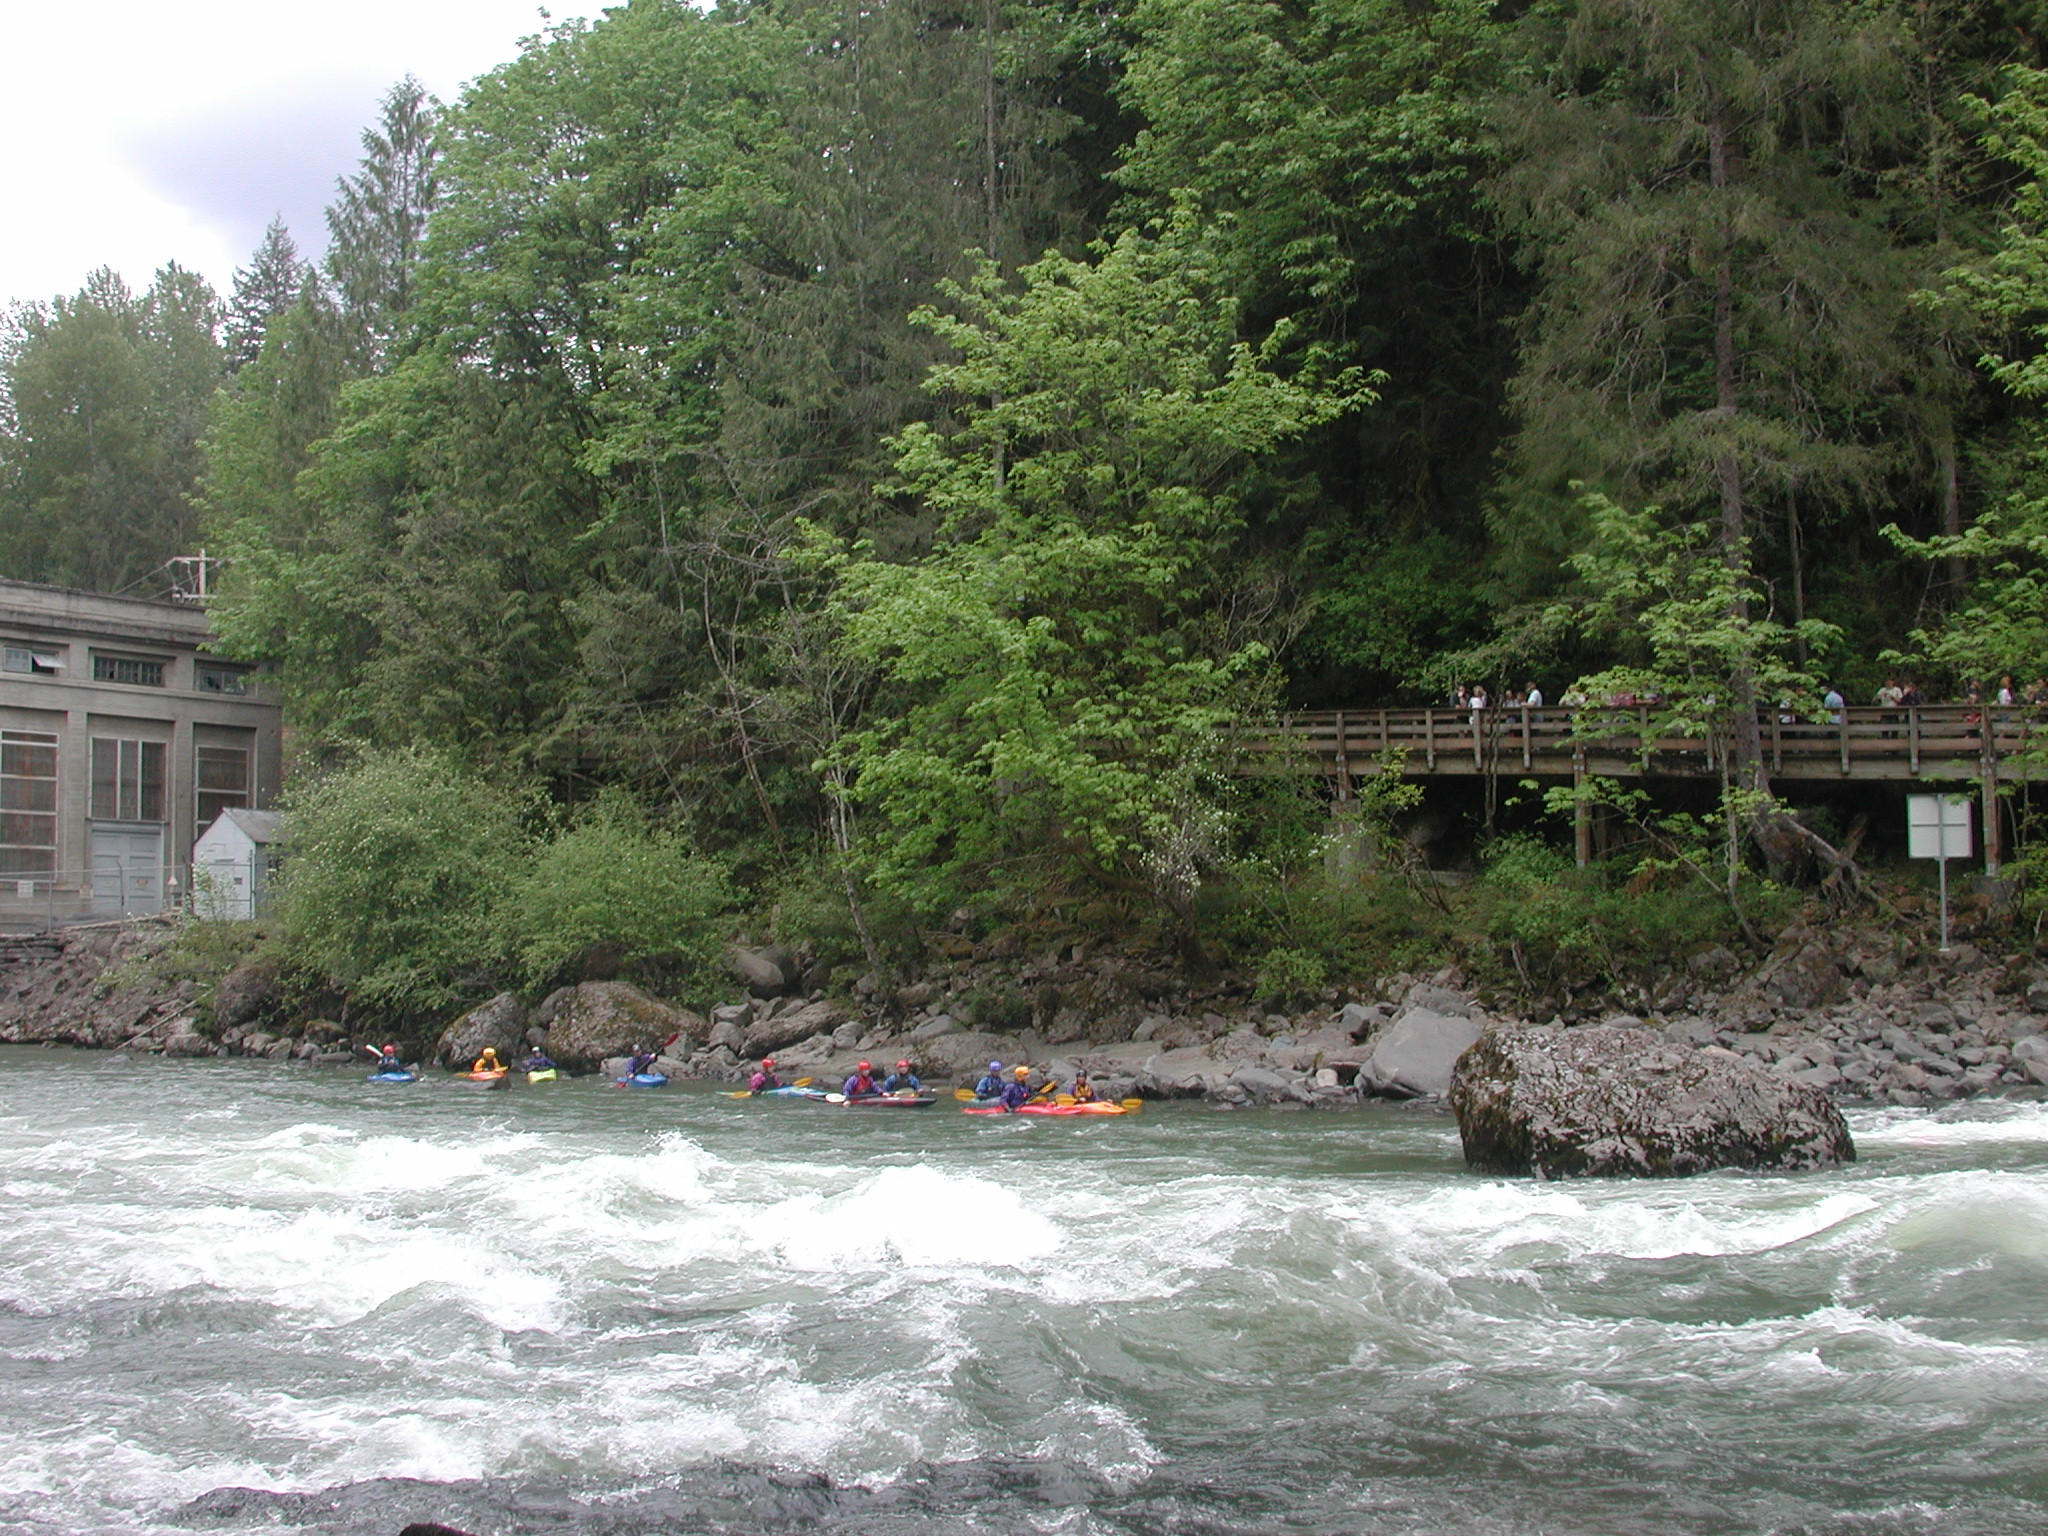 Paddlers on the Snoqualmie River